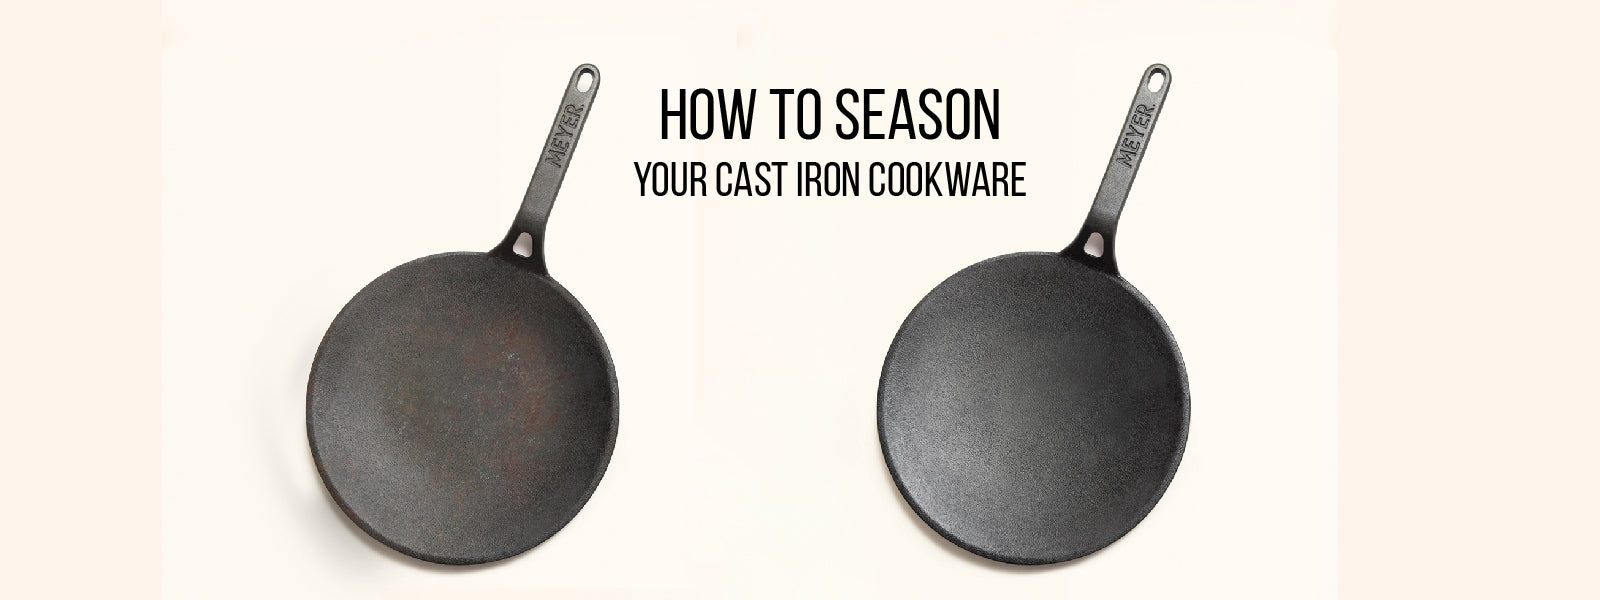 All Reasons To Season Your Cast Iron Cookware